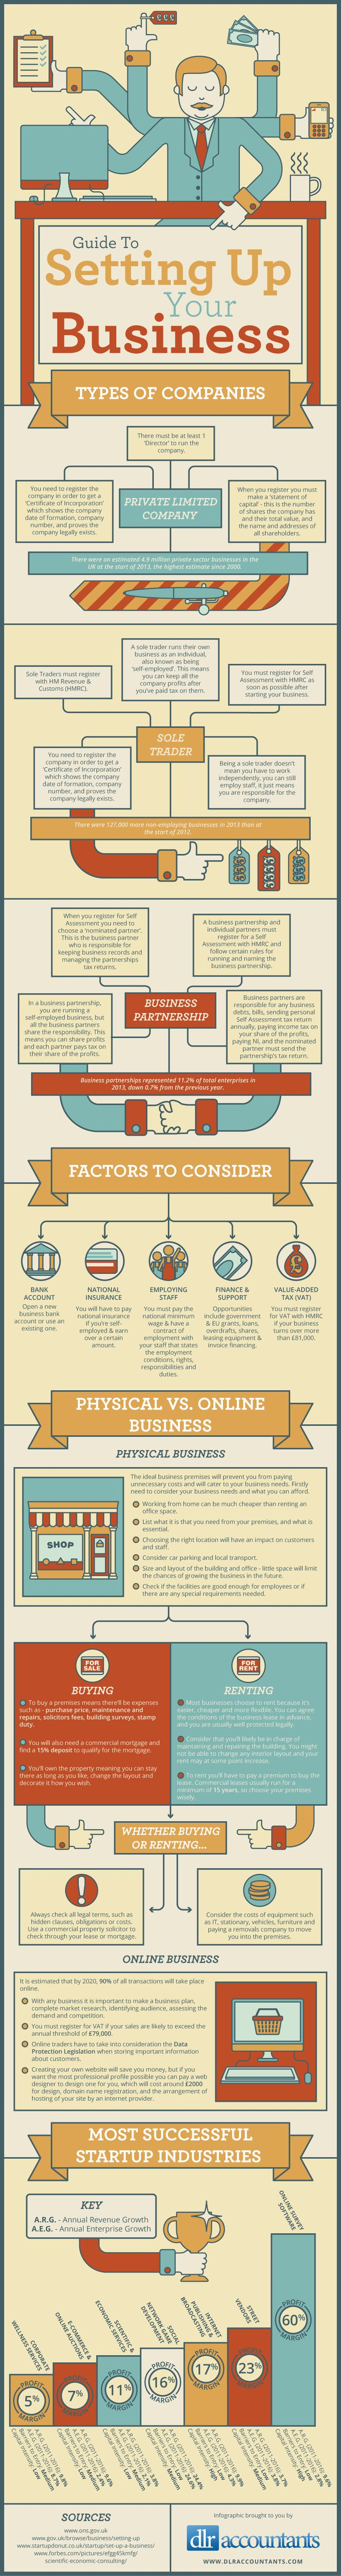 Guide To Setting Up Your Business   #infographic #Business #Startup ♥ Loved and pinned by www.misfeldtaccounting.com